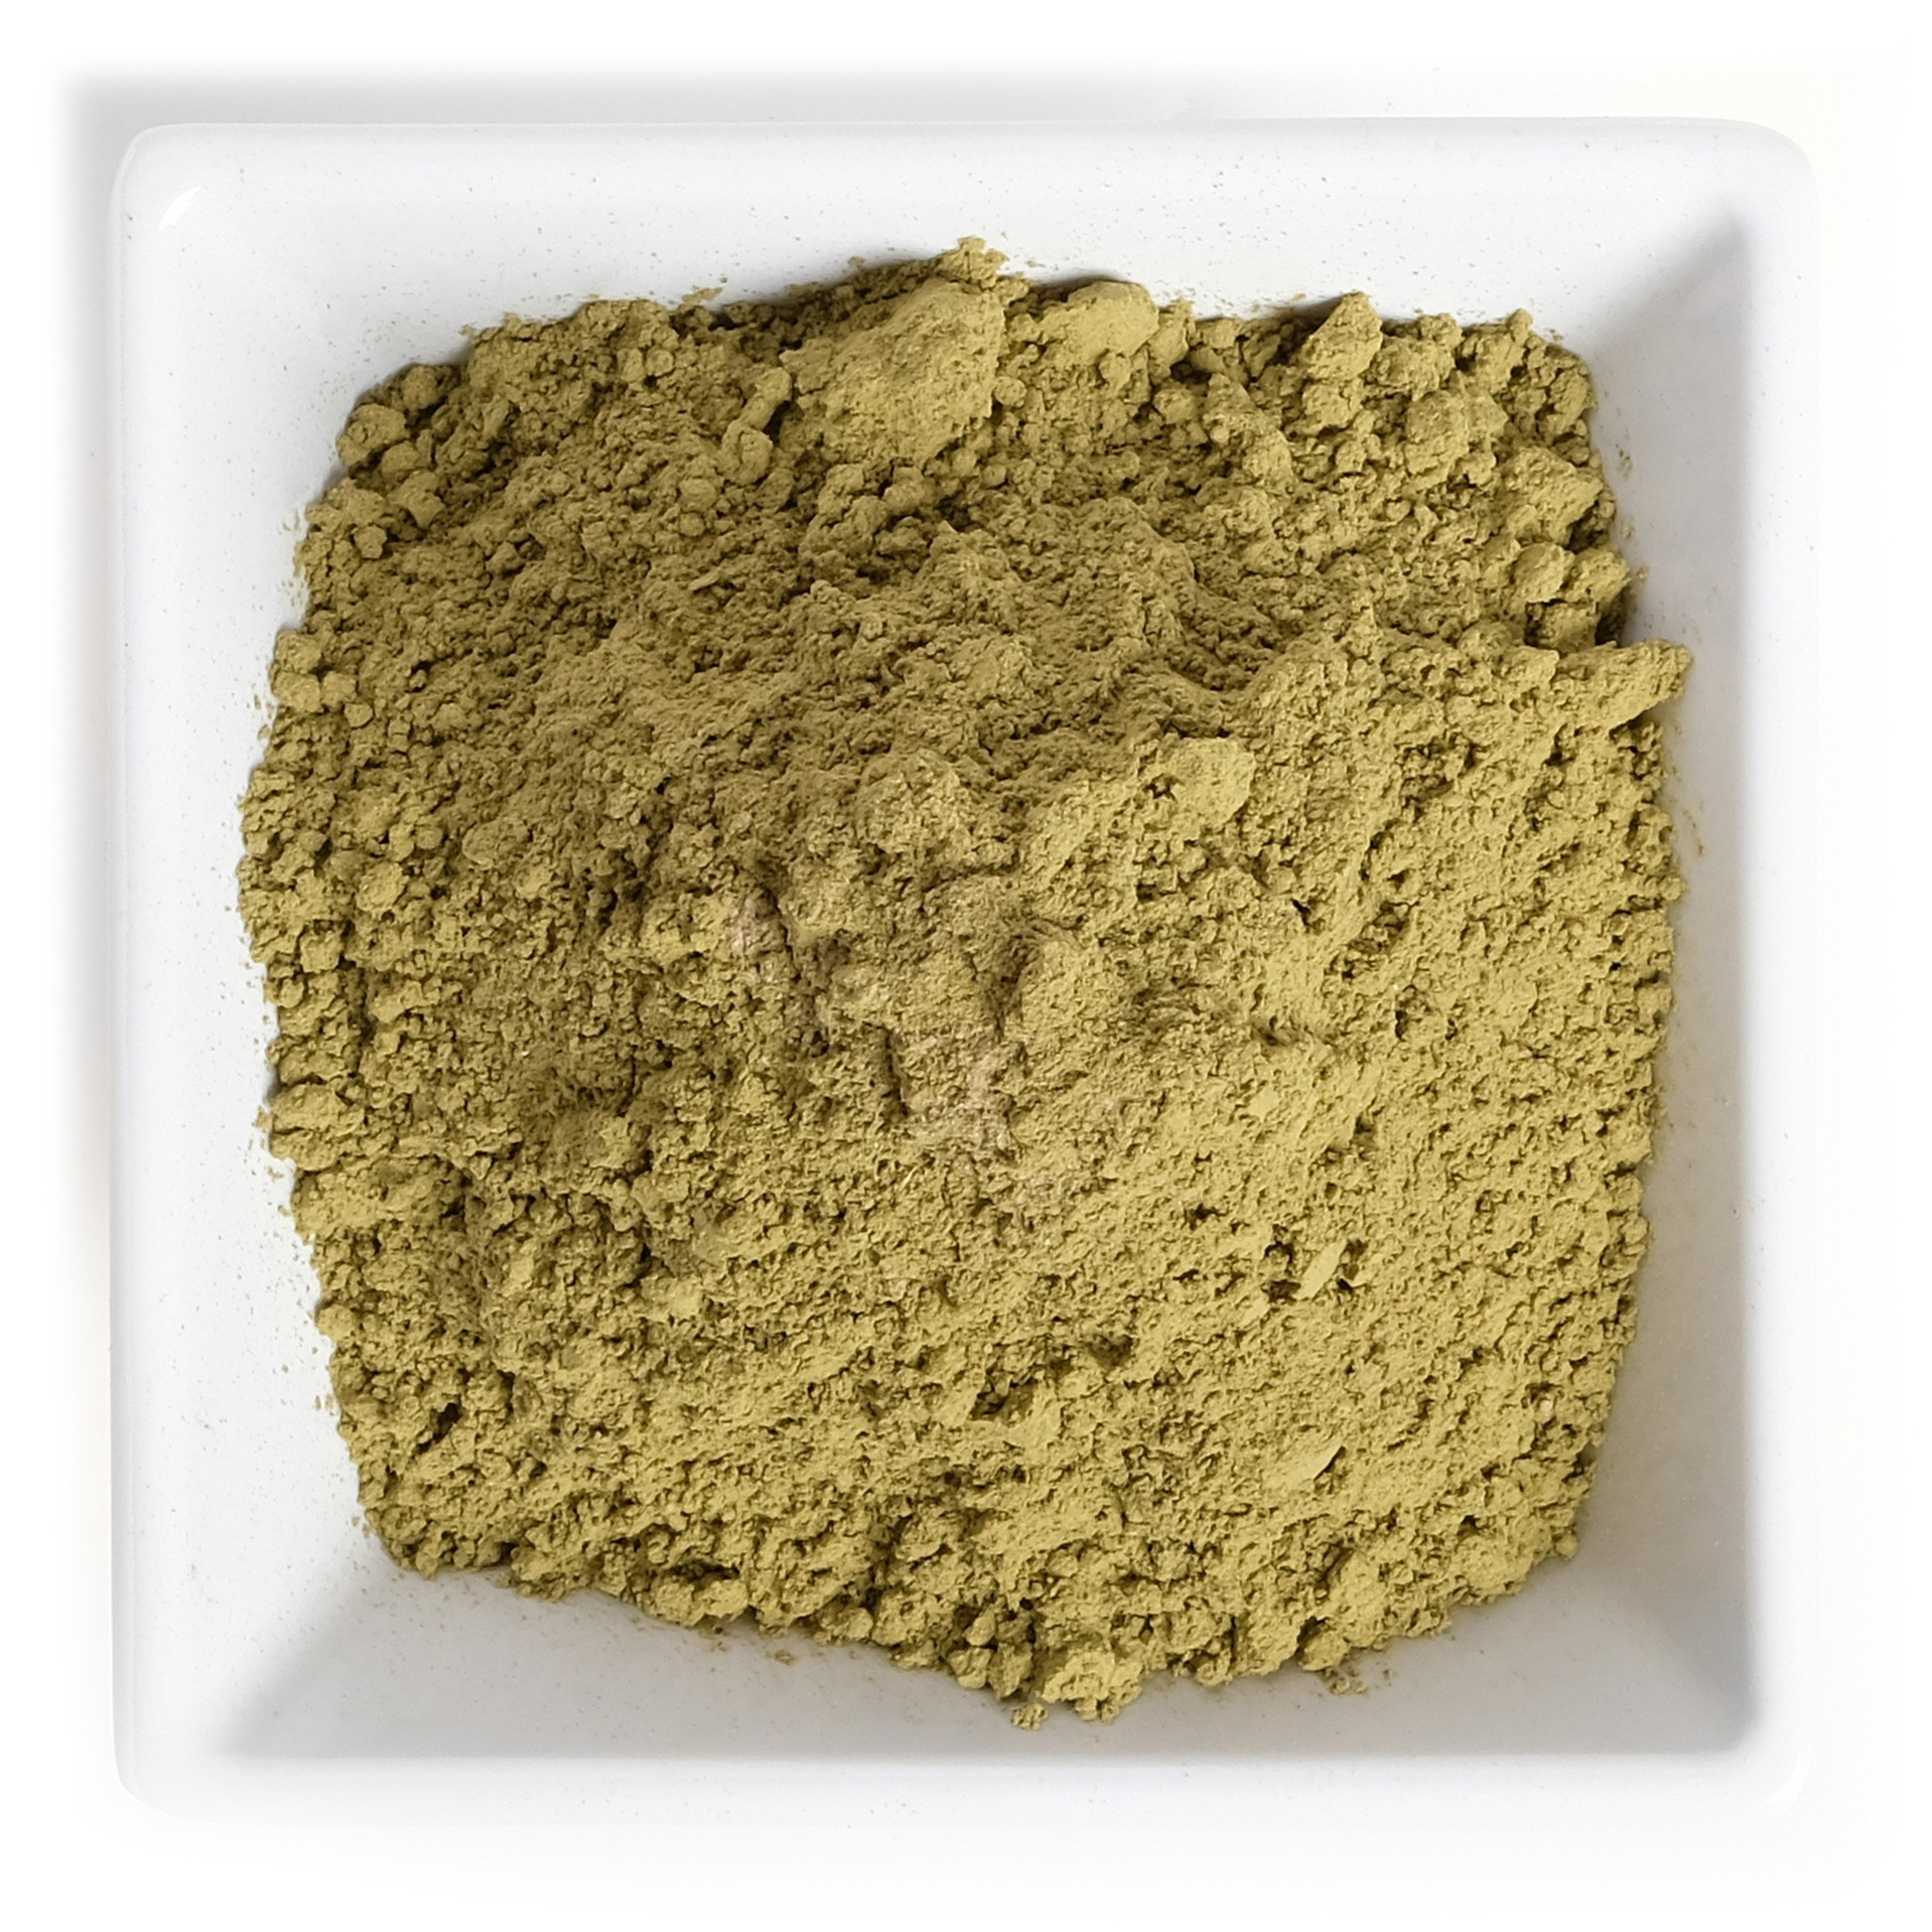 Red Vein Sumatra Kratom Powder